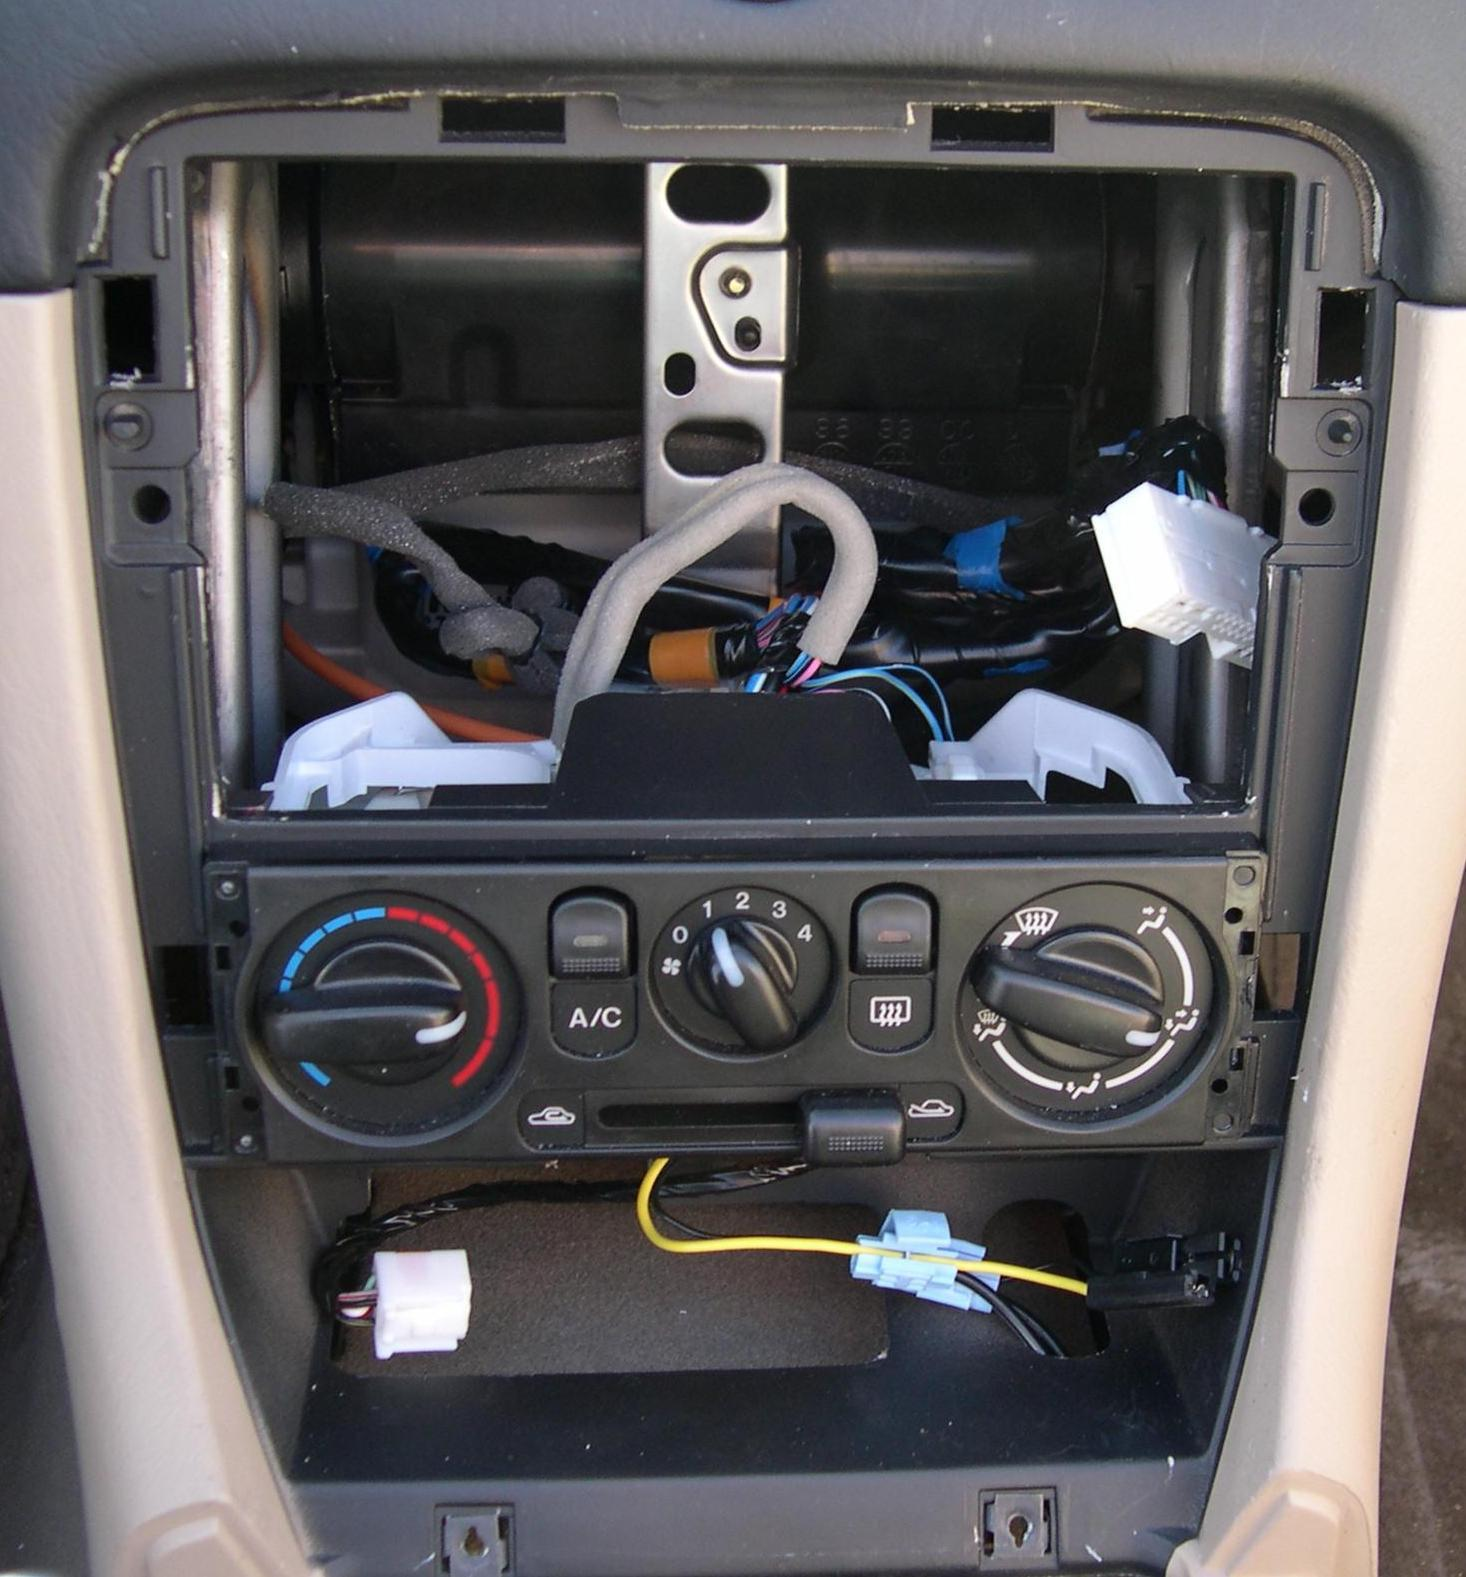 2001 Radio Out the mazda nb oem audio system faq  at bayanpartner.co